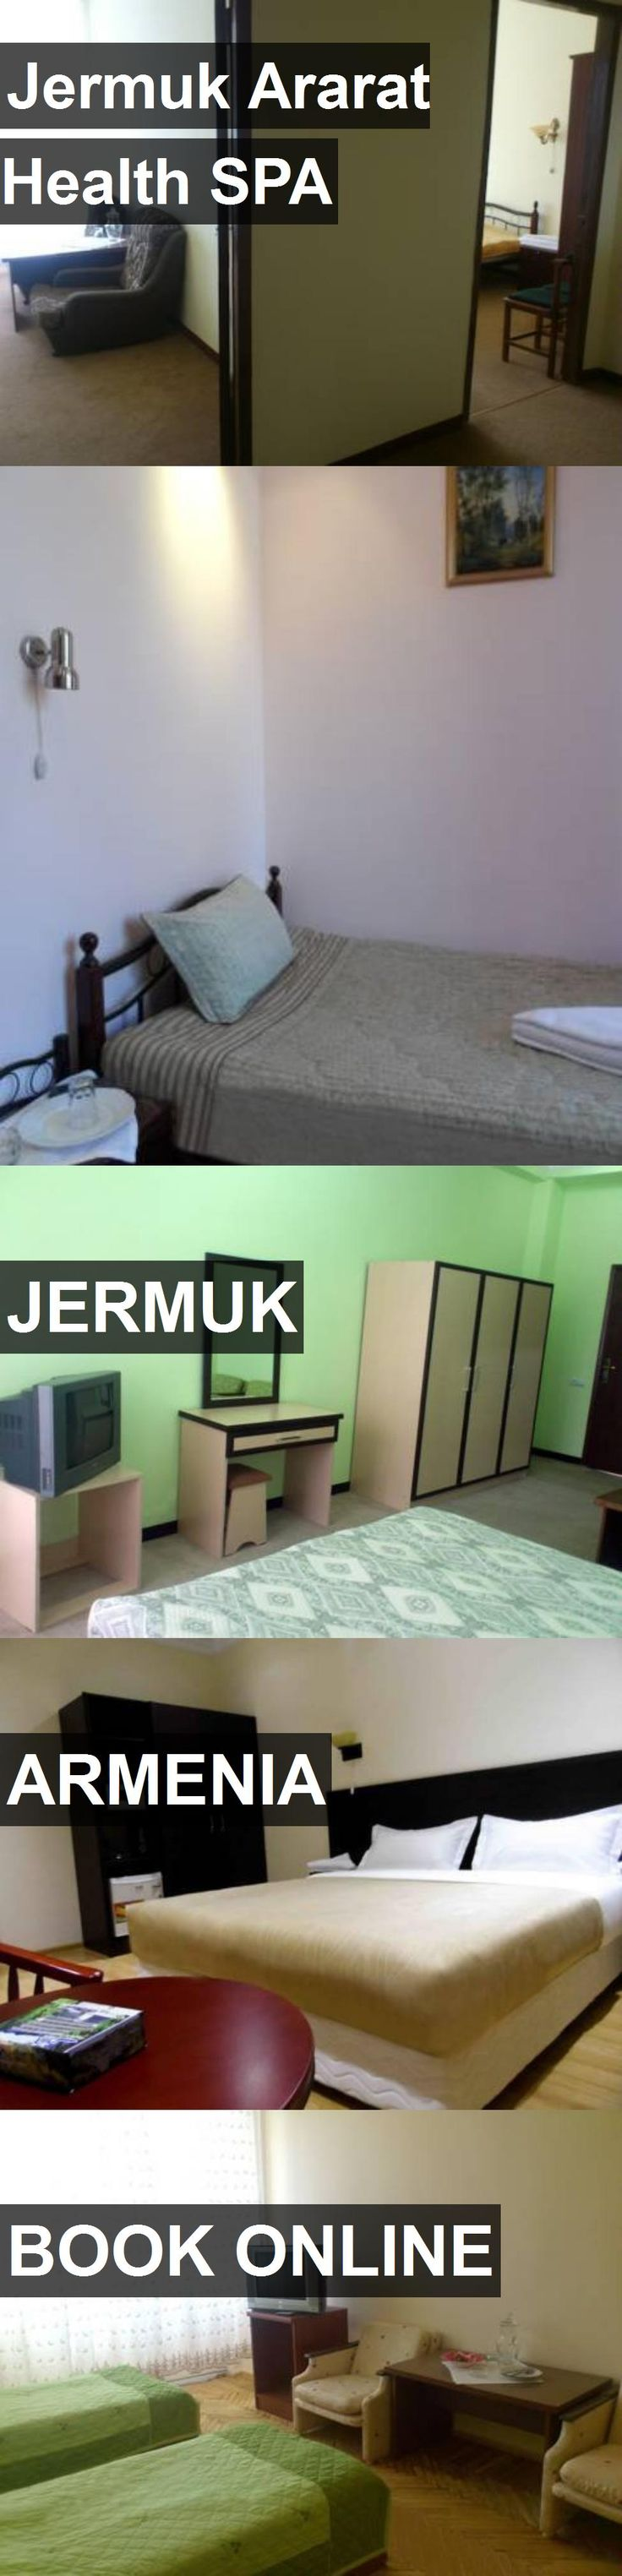 Hotel Jermuk Ararat Health SPA in Jermuk, Armenia. For more information, photos, reviews and best prices please follow the link. #Armenia #Jermuk #travel #vacation #hotel